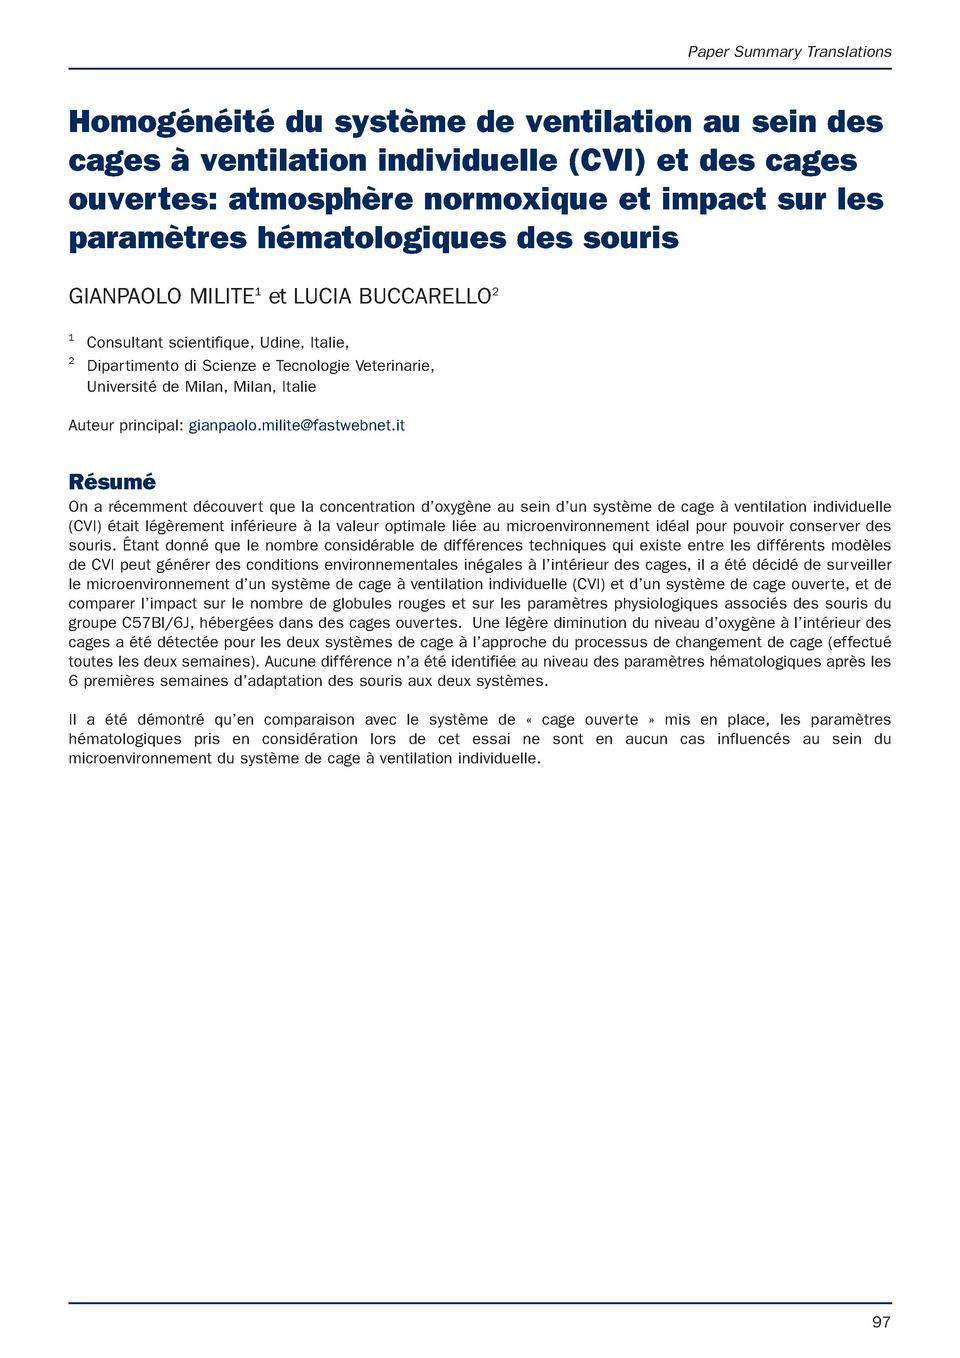 Paper Summary Translations  Homog  n  it   du syst  me de ventilation au sein des cages    ventilation individuelle  CVI  ...